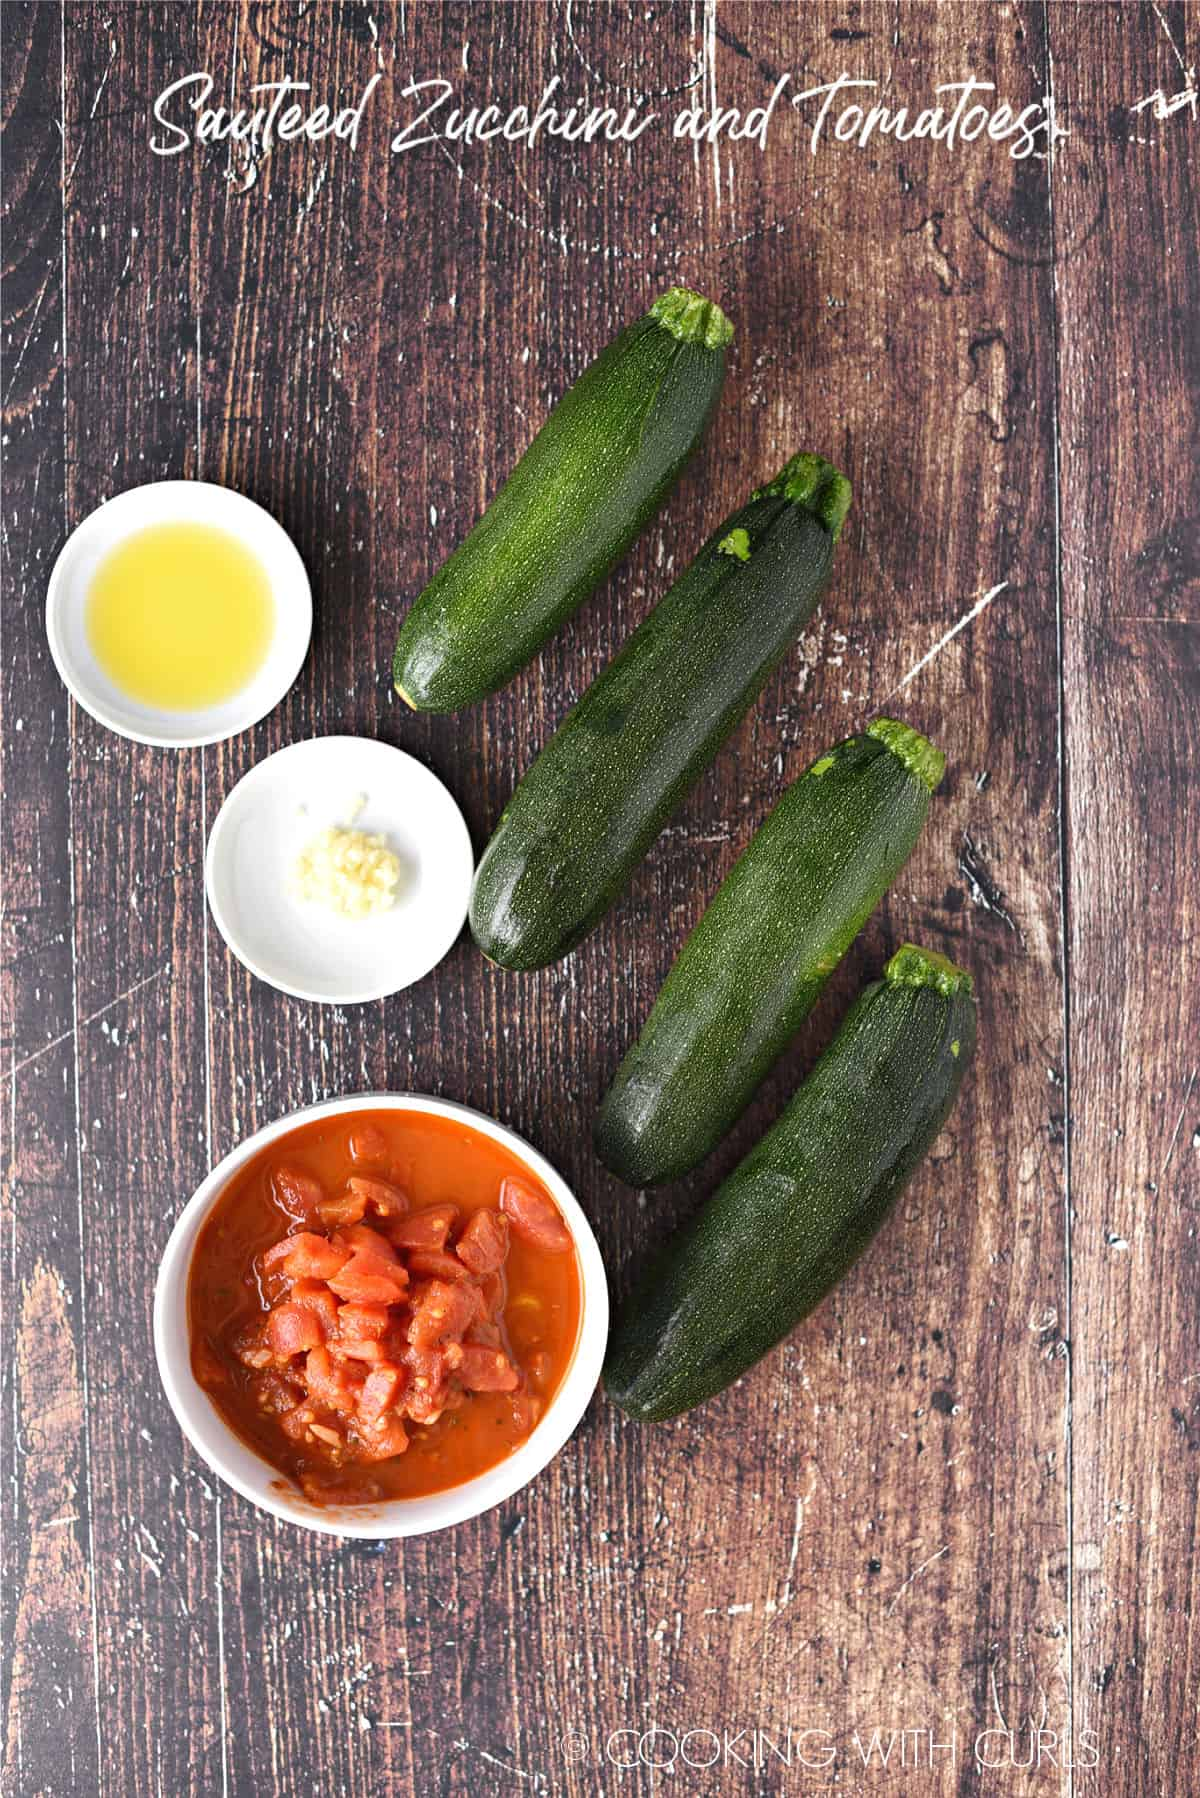 Ingredients to make Sauteed Zucchini and Tomatoes with four medium zucchinis, a bowl of diced Italian tomatoes, minced garlic and olive oil in small white bowls.